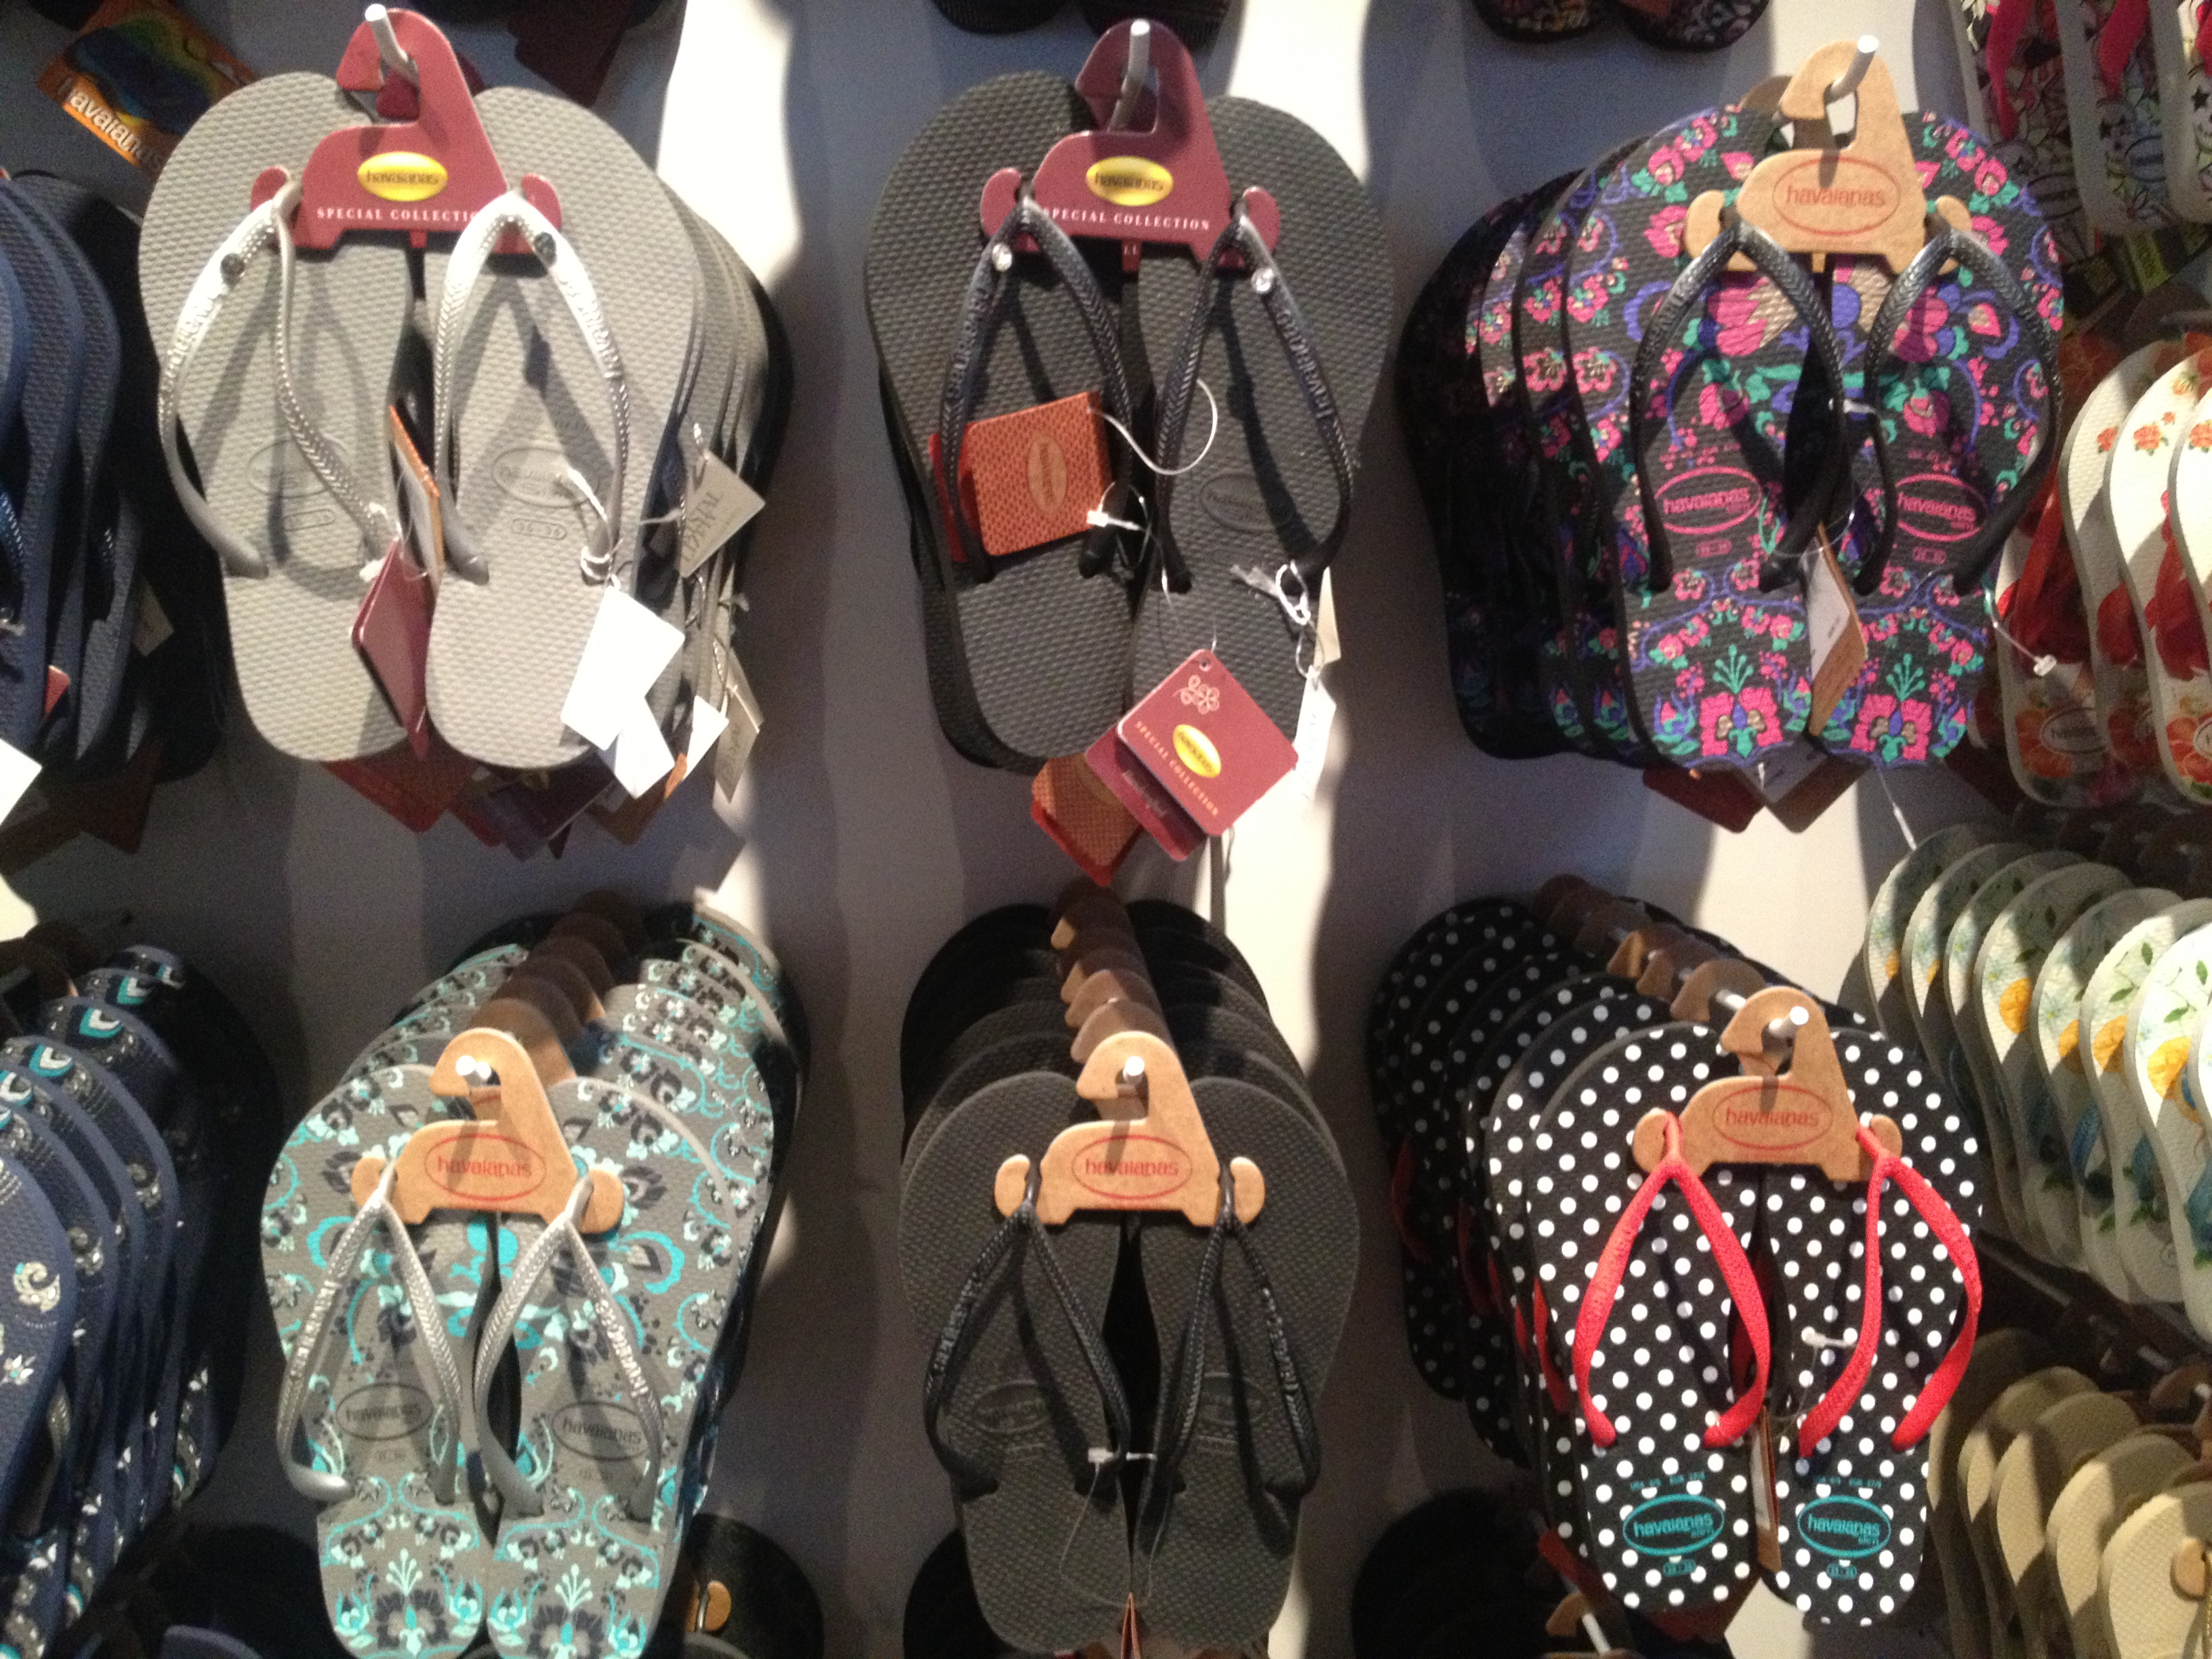 c8c4fb576b21ca Havaianas Opens First NYC Pop-Up Shop in Meatpacking District ...